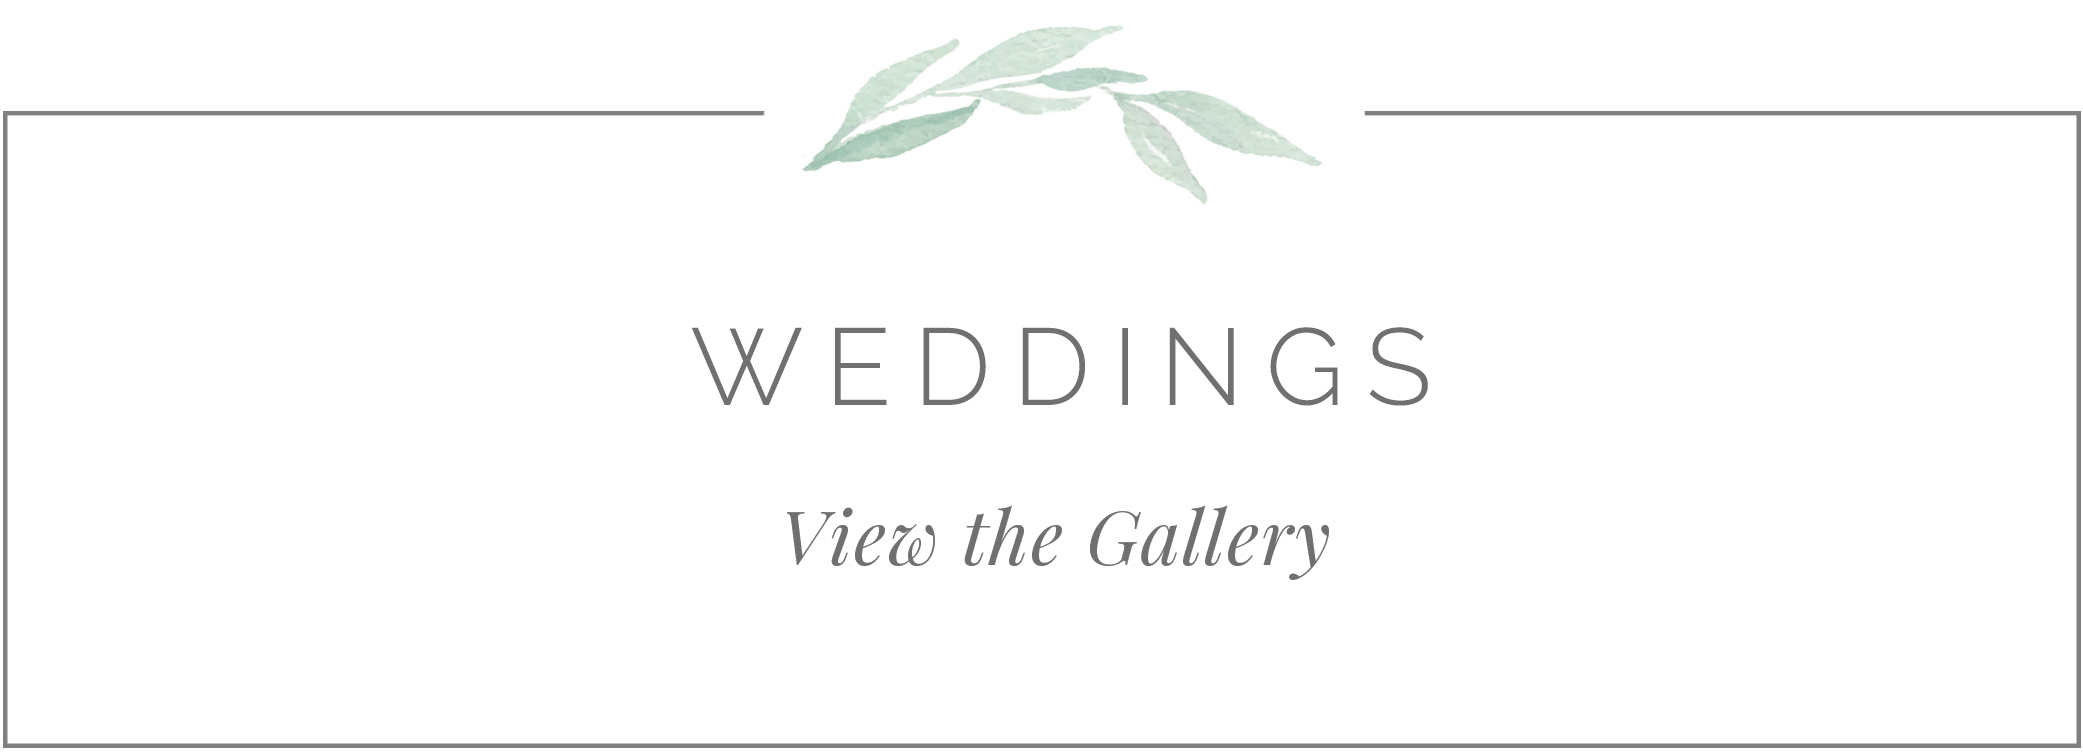 weddinggallerybutton 5 9 18.jpg